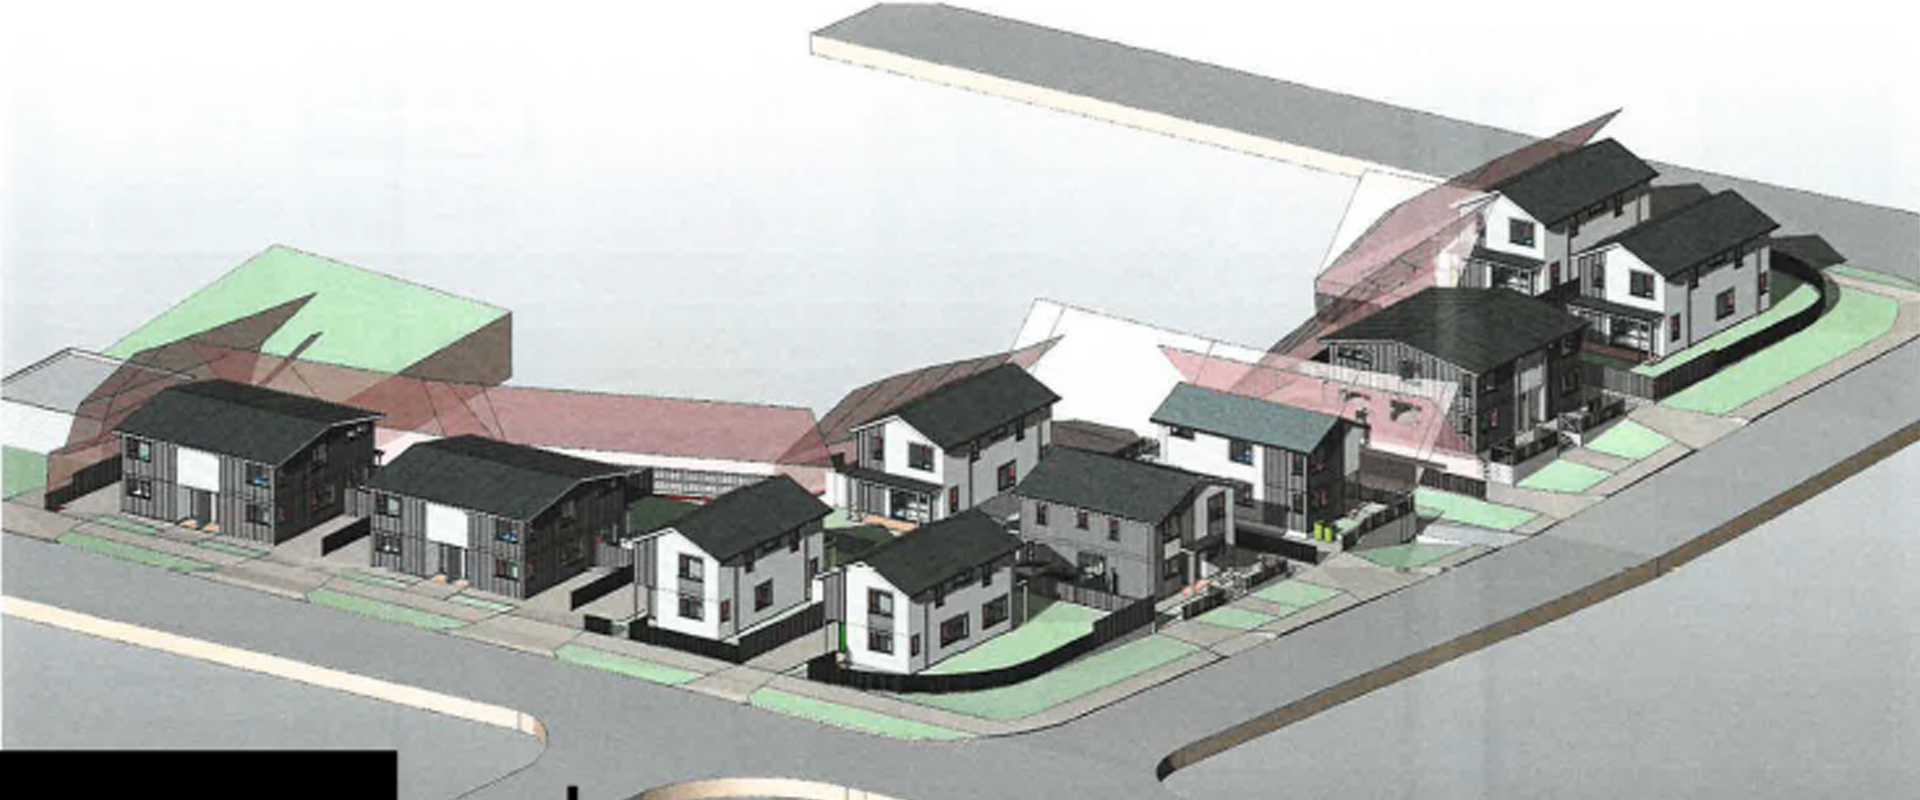 Alford Street and Saxon Street render